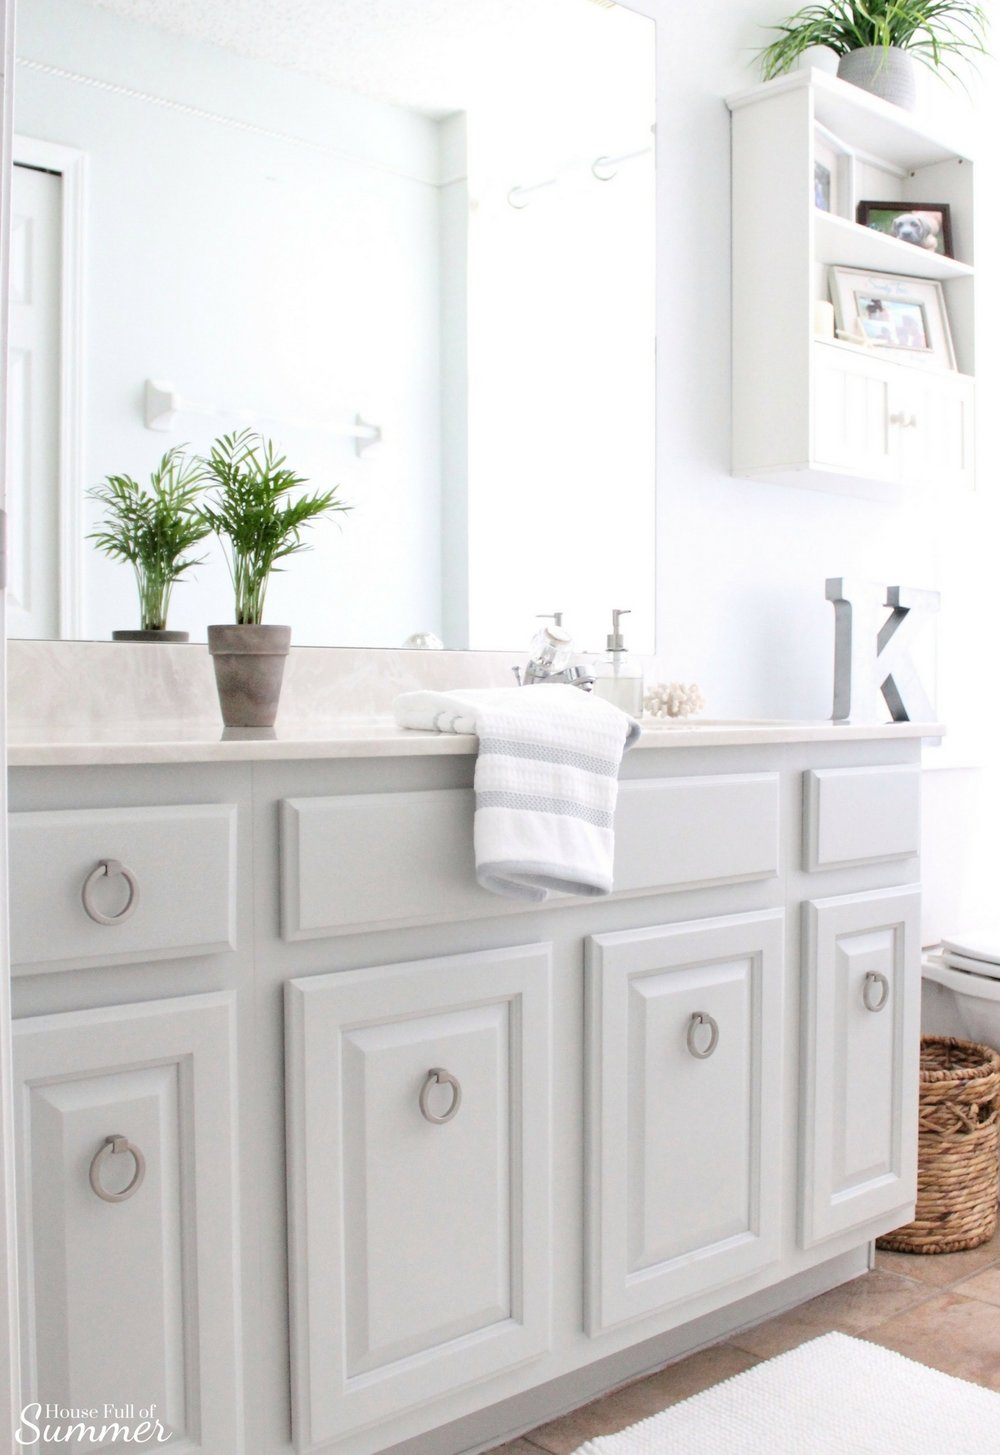 Easy Bathroom Cabinet Transformation — House Full of Summer